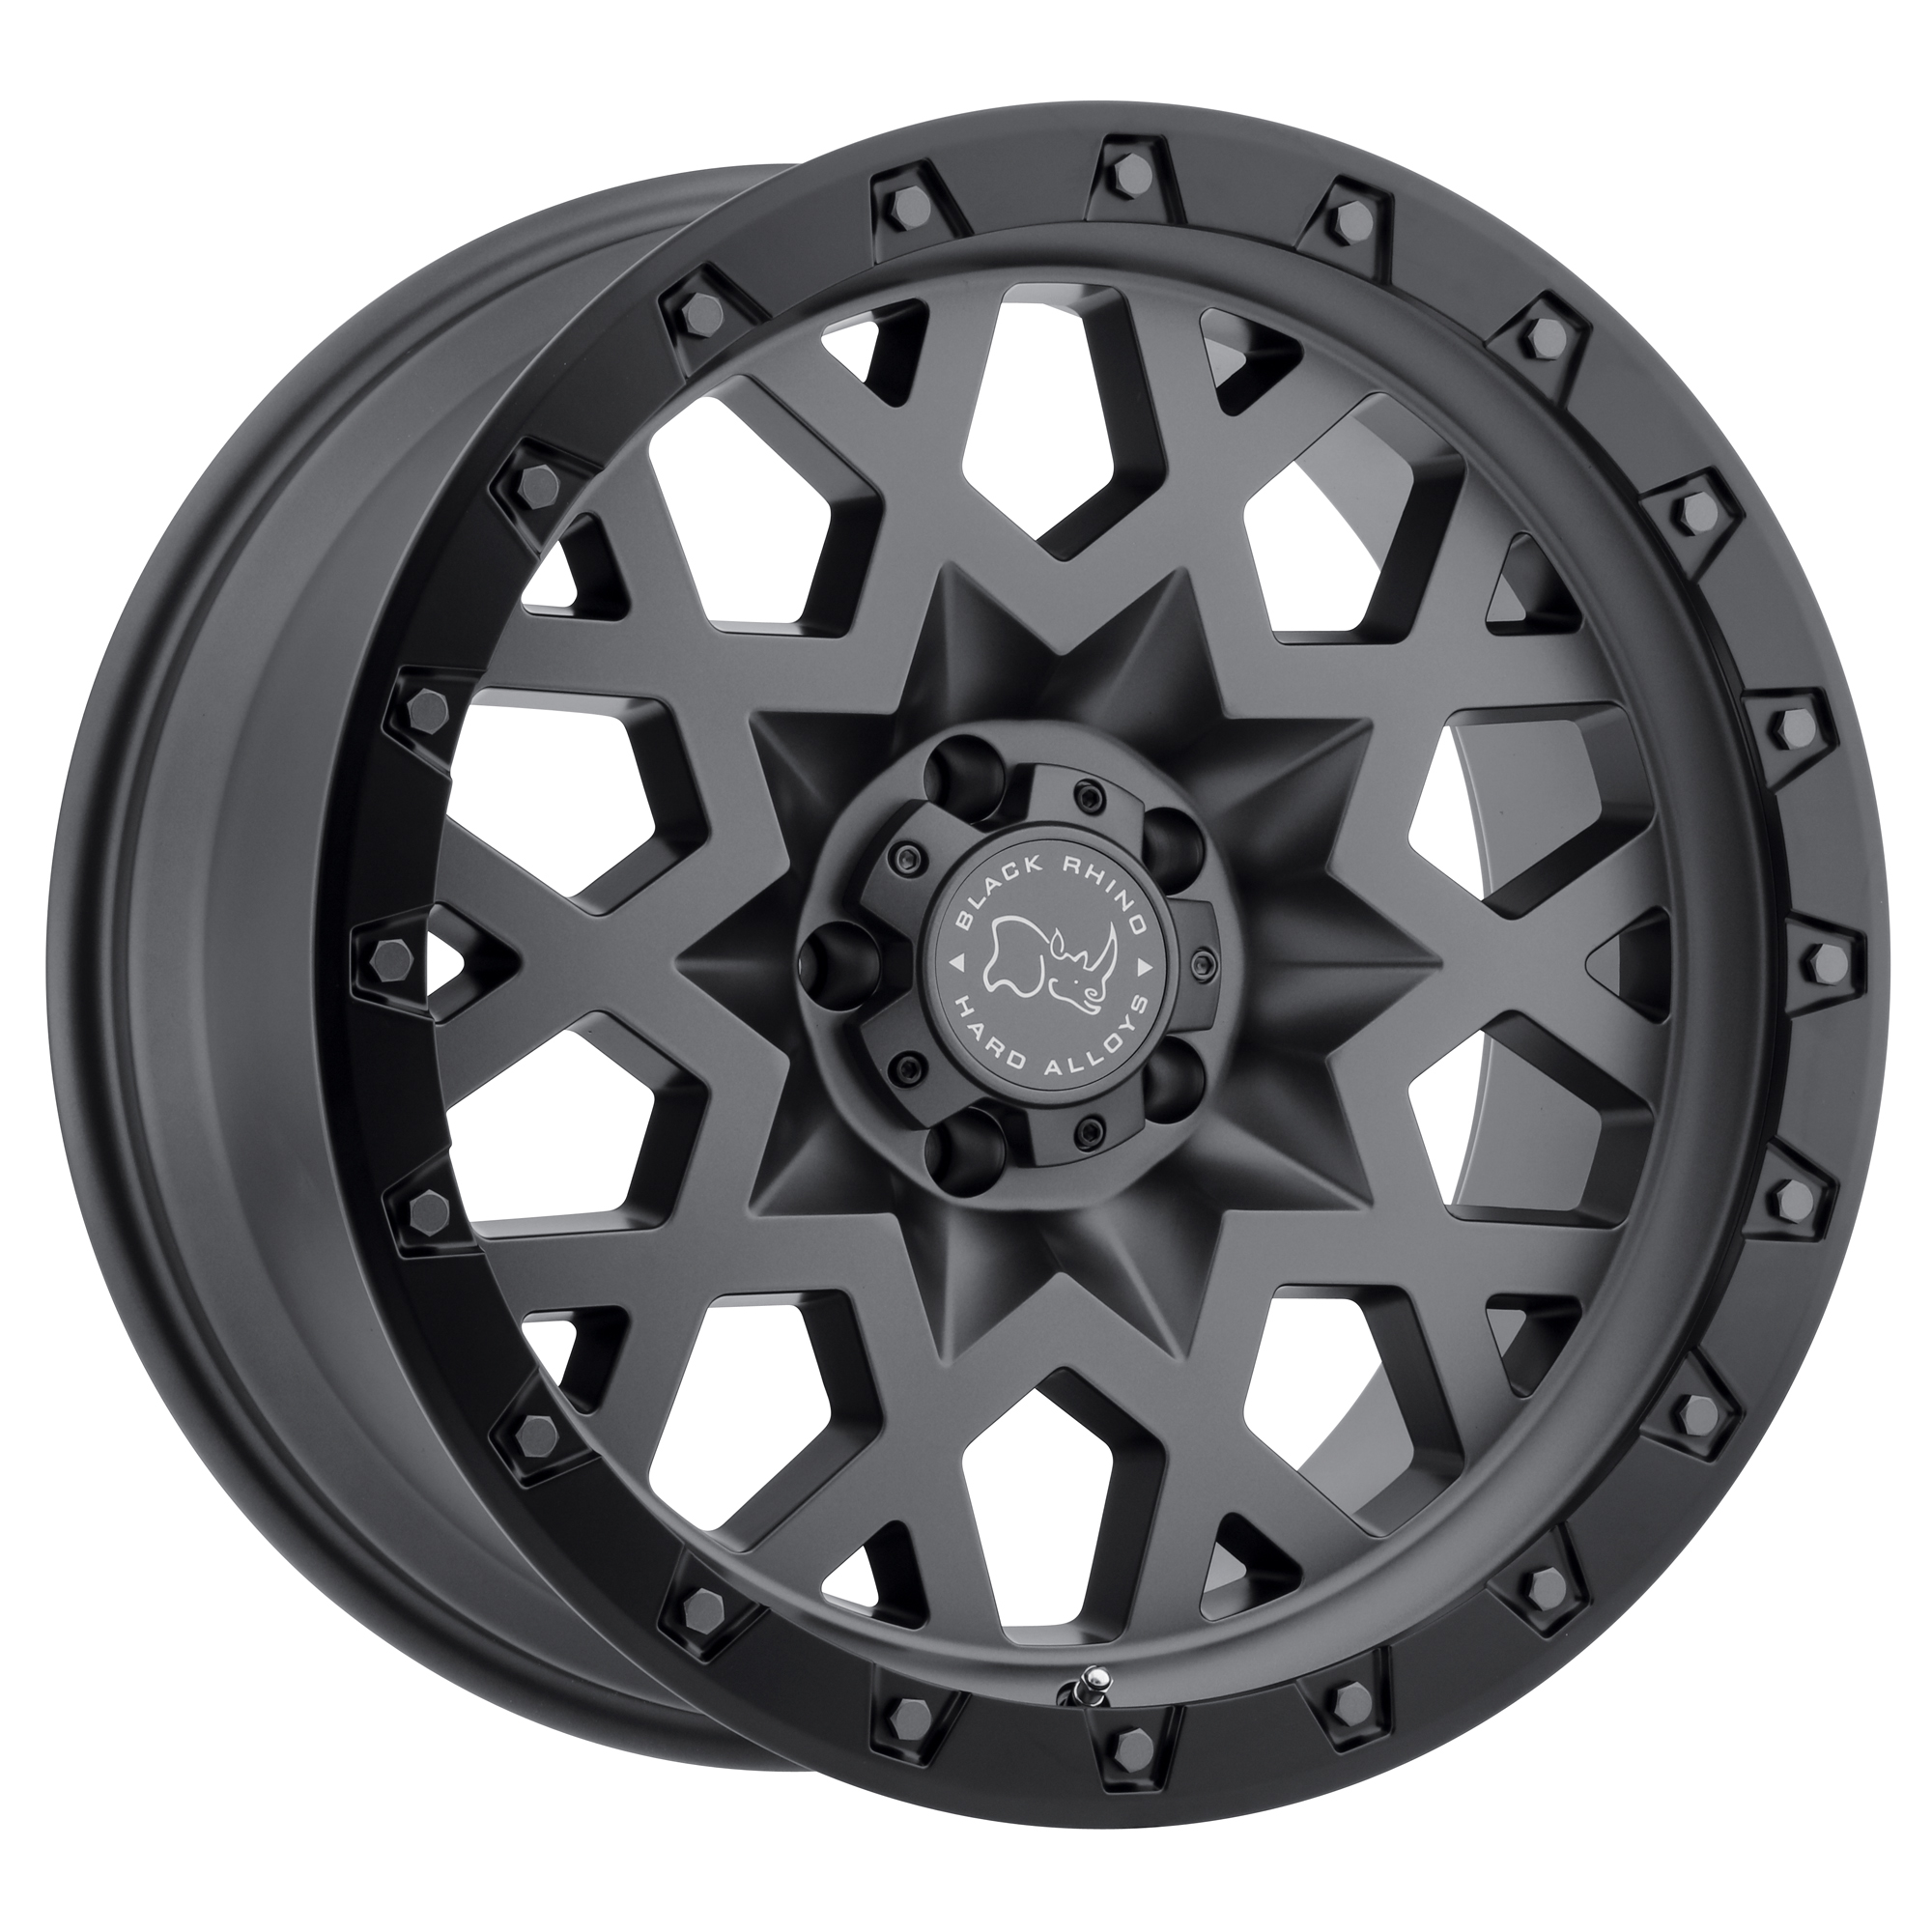 BLACK RHINO SPROCKET hliníkové disky 9,5x17 5x127 ET-18 MATTE GUNMETAL W/BLACK LIP EDGE (GUNMETAL BOLTS)